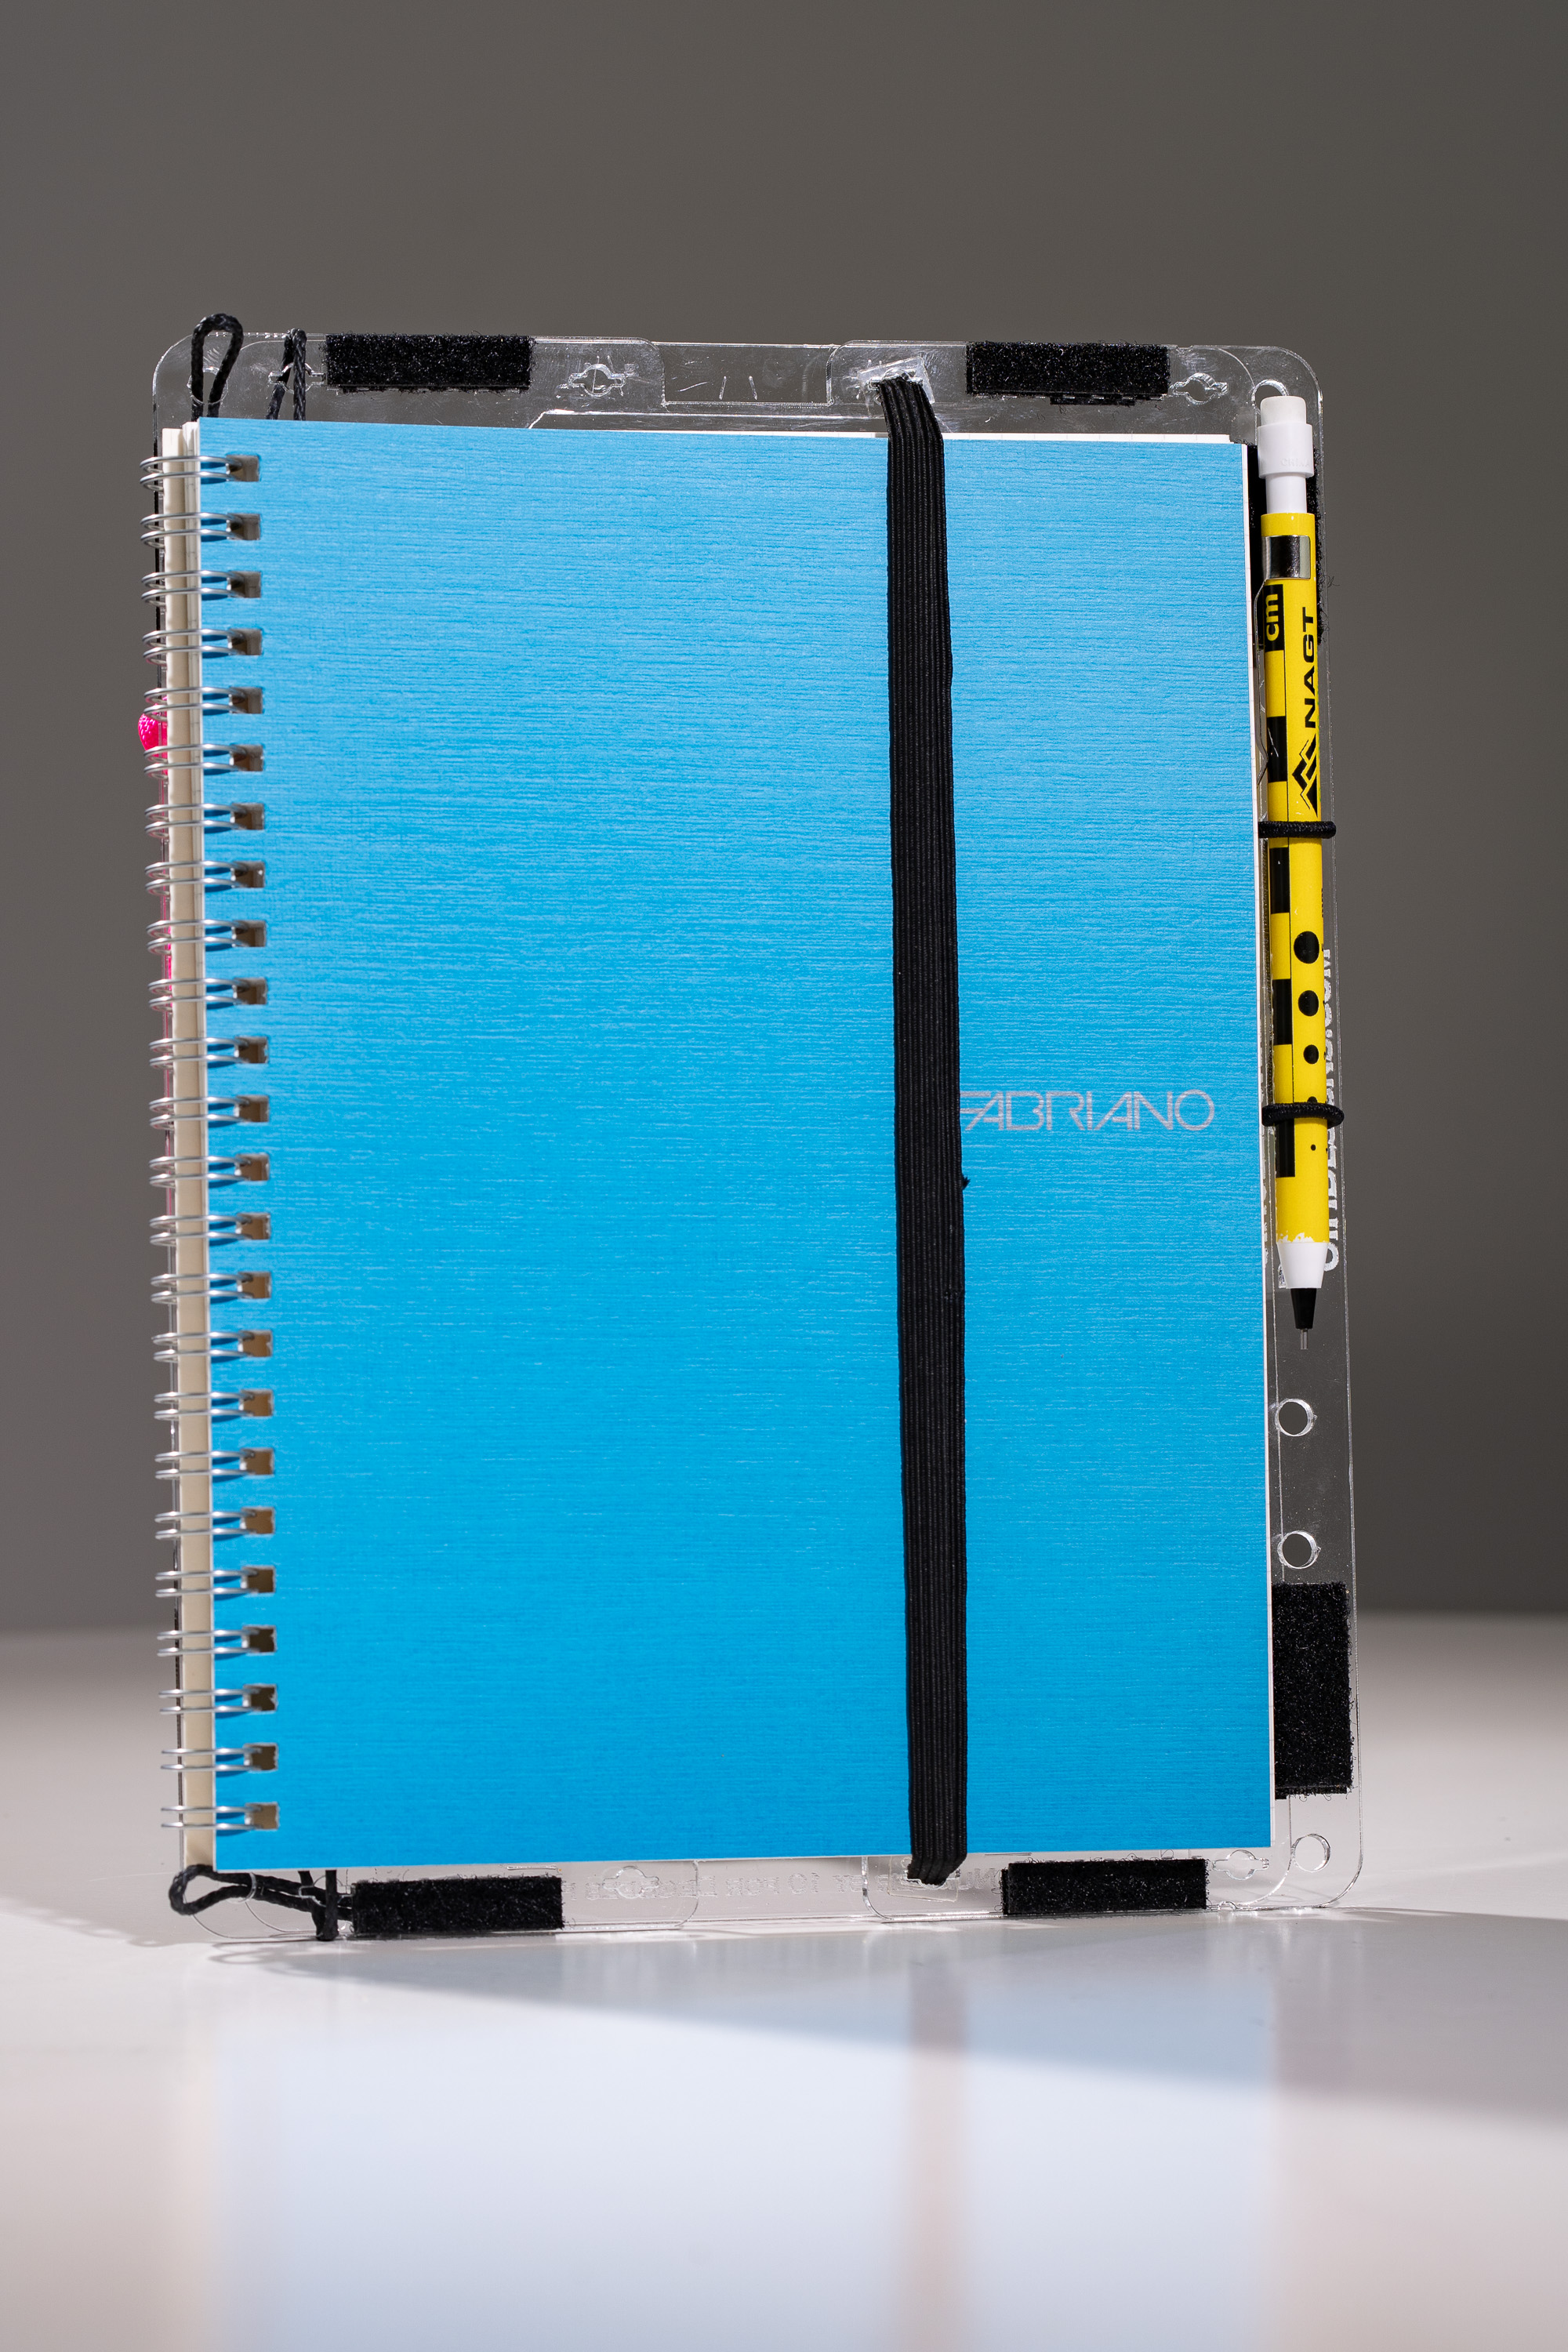 The SingleBoard Holds upto A5 Sized Notebooks.